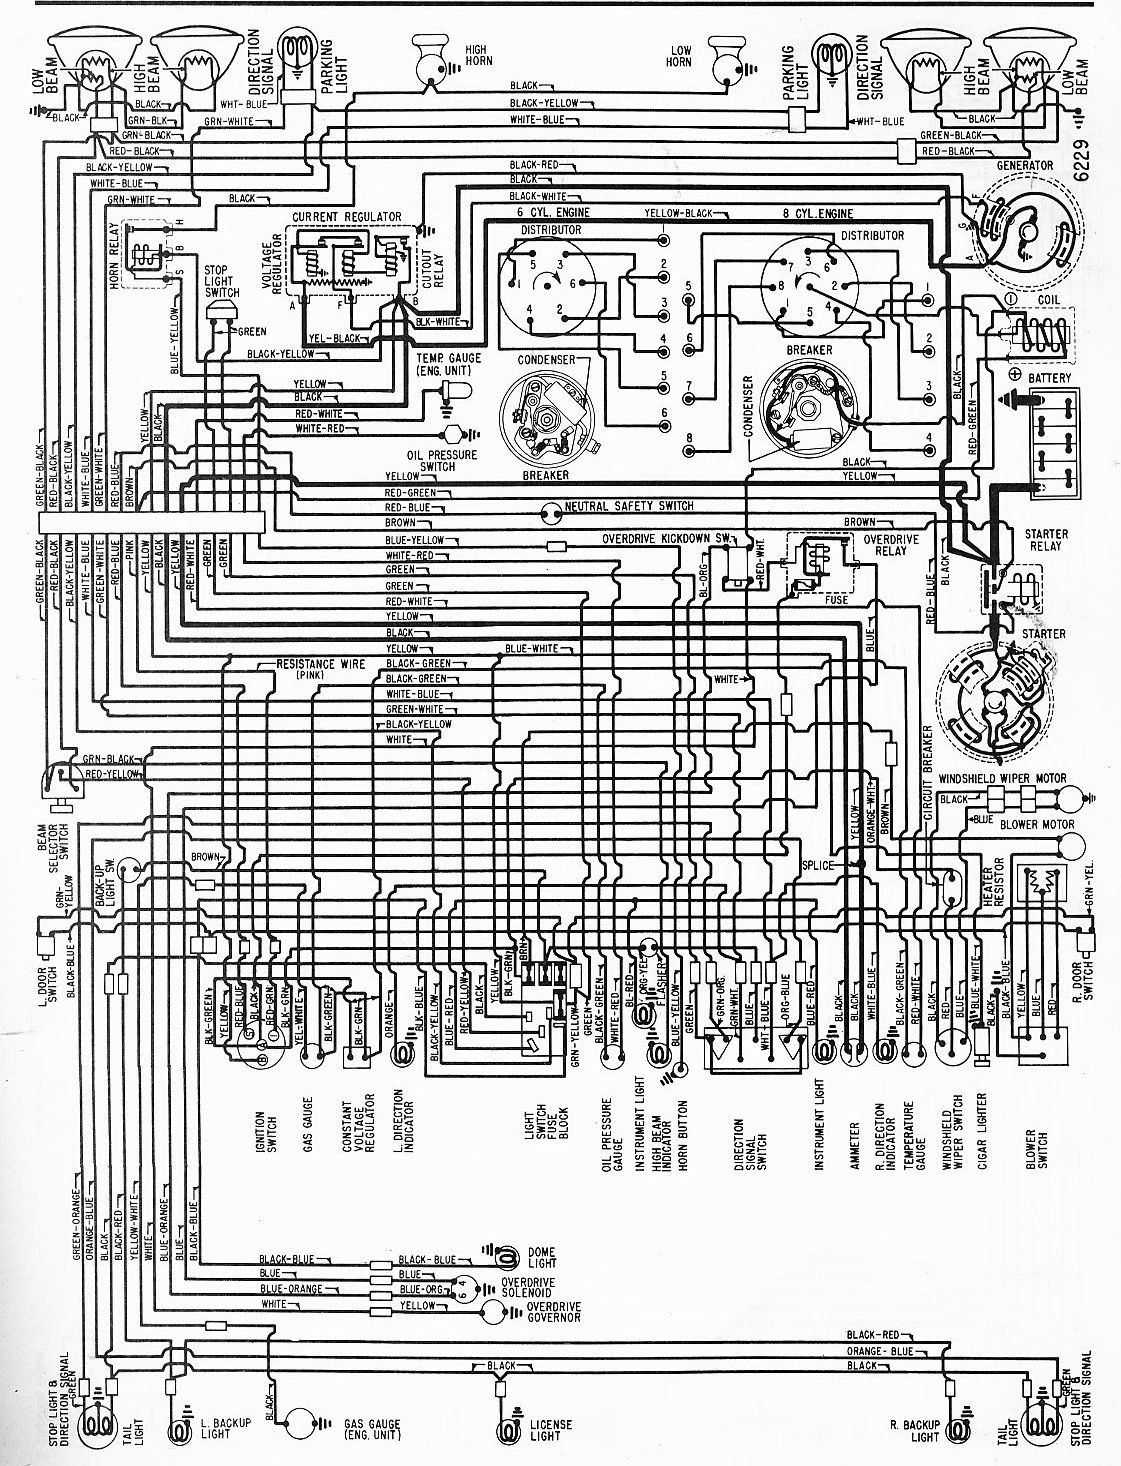 hight resolution of chevrolet c10 fuse box wiring diagram toolbox 1985 chevy c10 fuse box location 1970 chevy c10